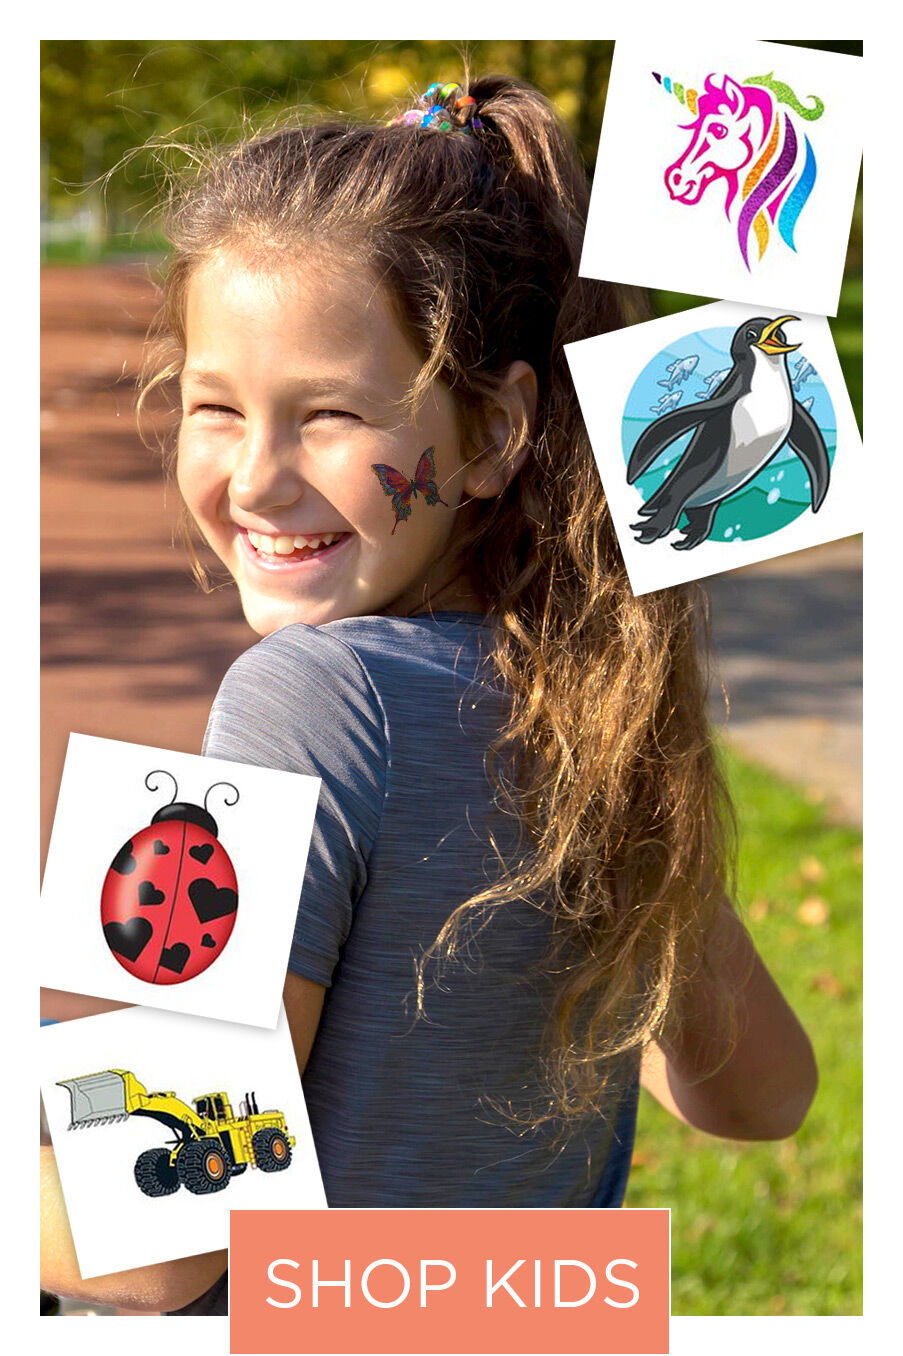 Shop Kids Temporary Tattoos